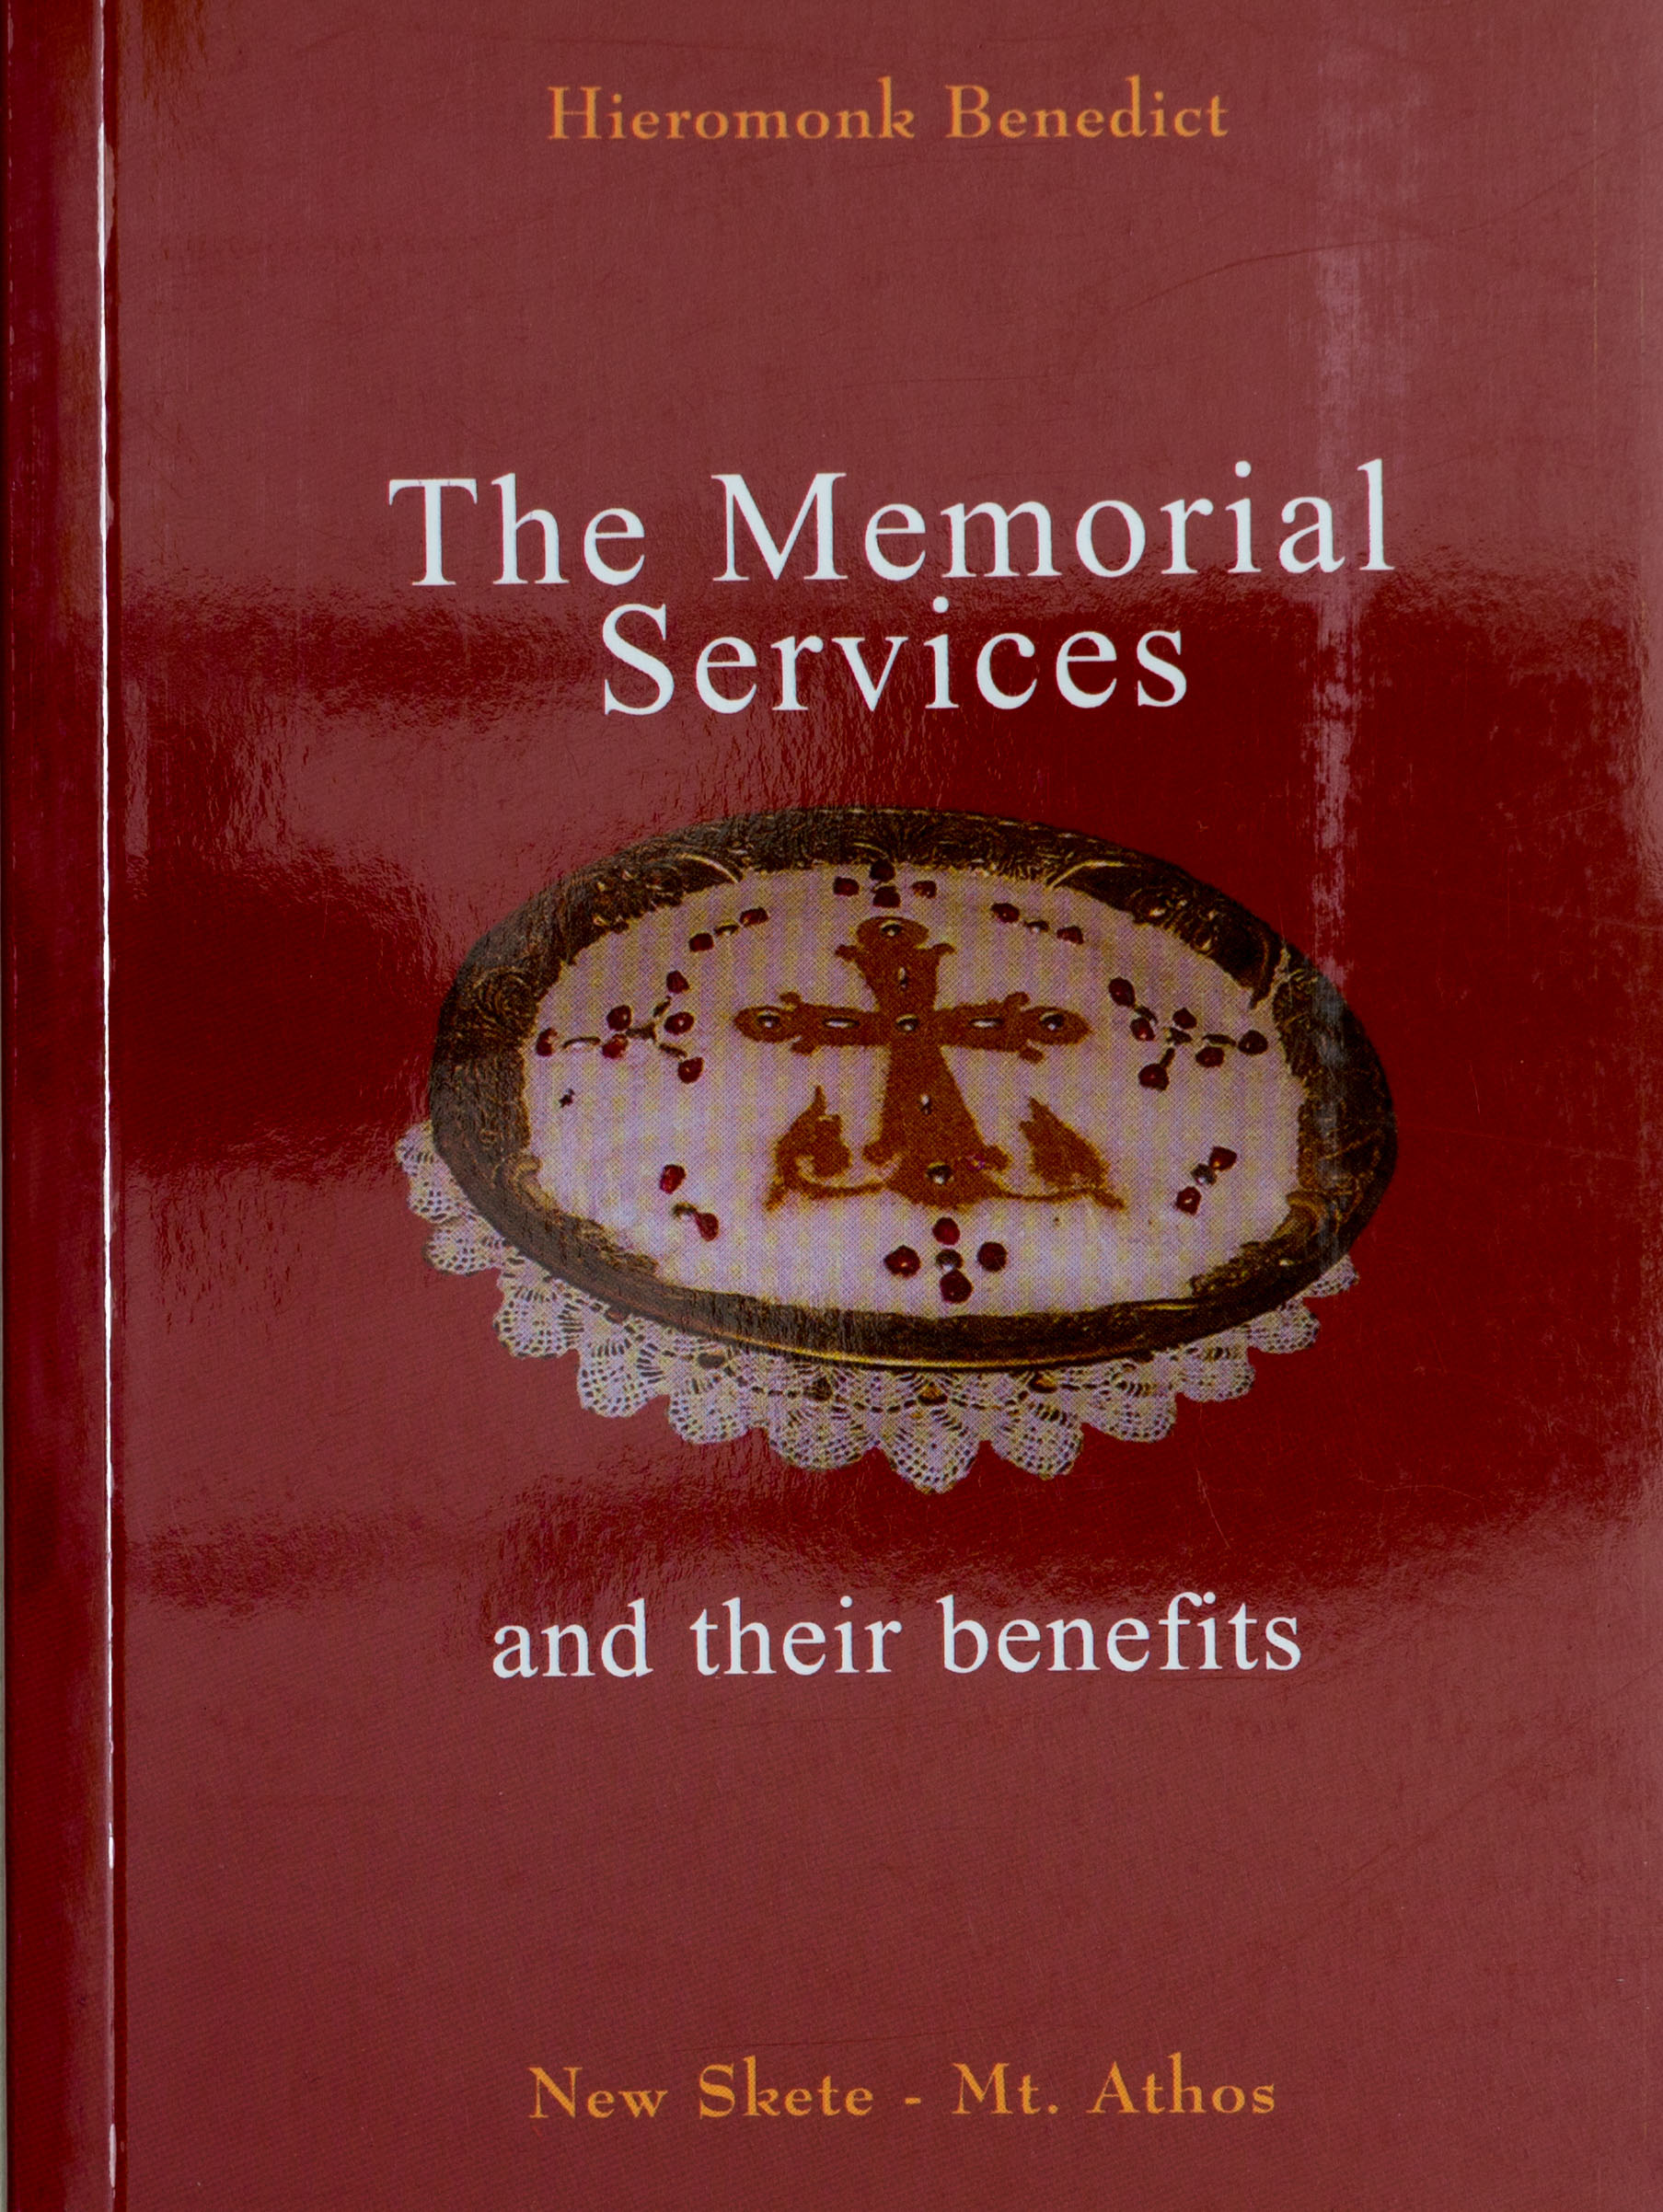 The Memorial Services and their benefits